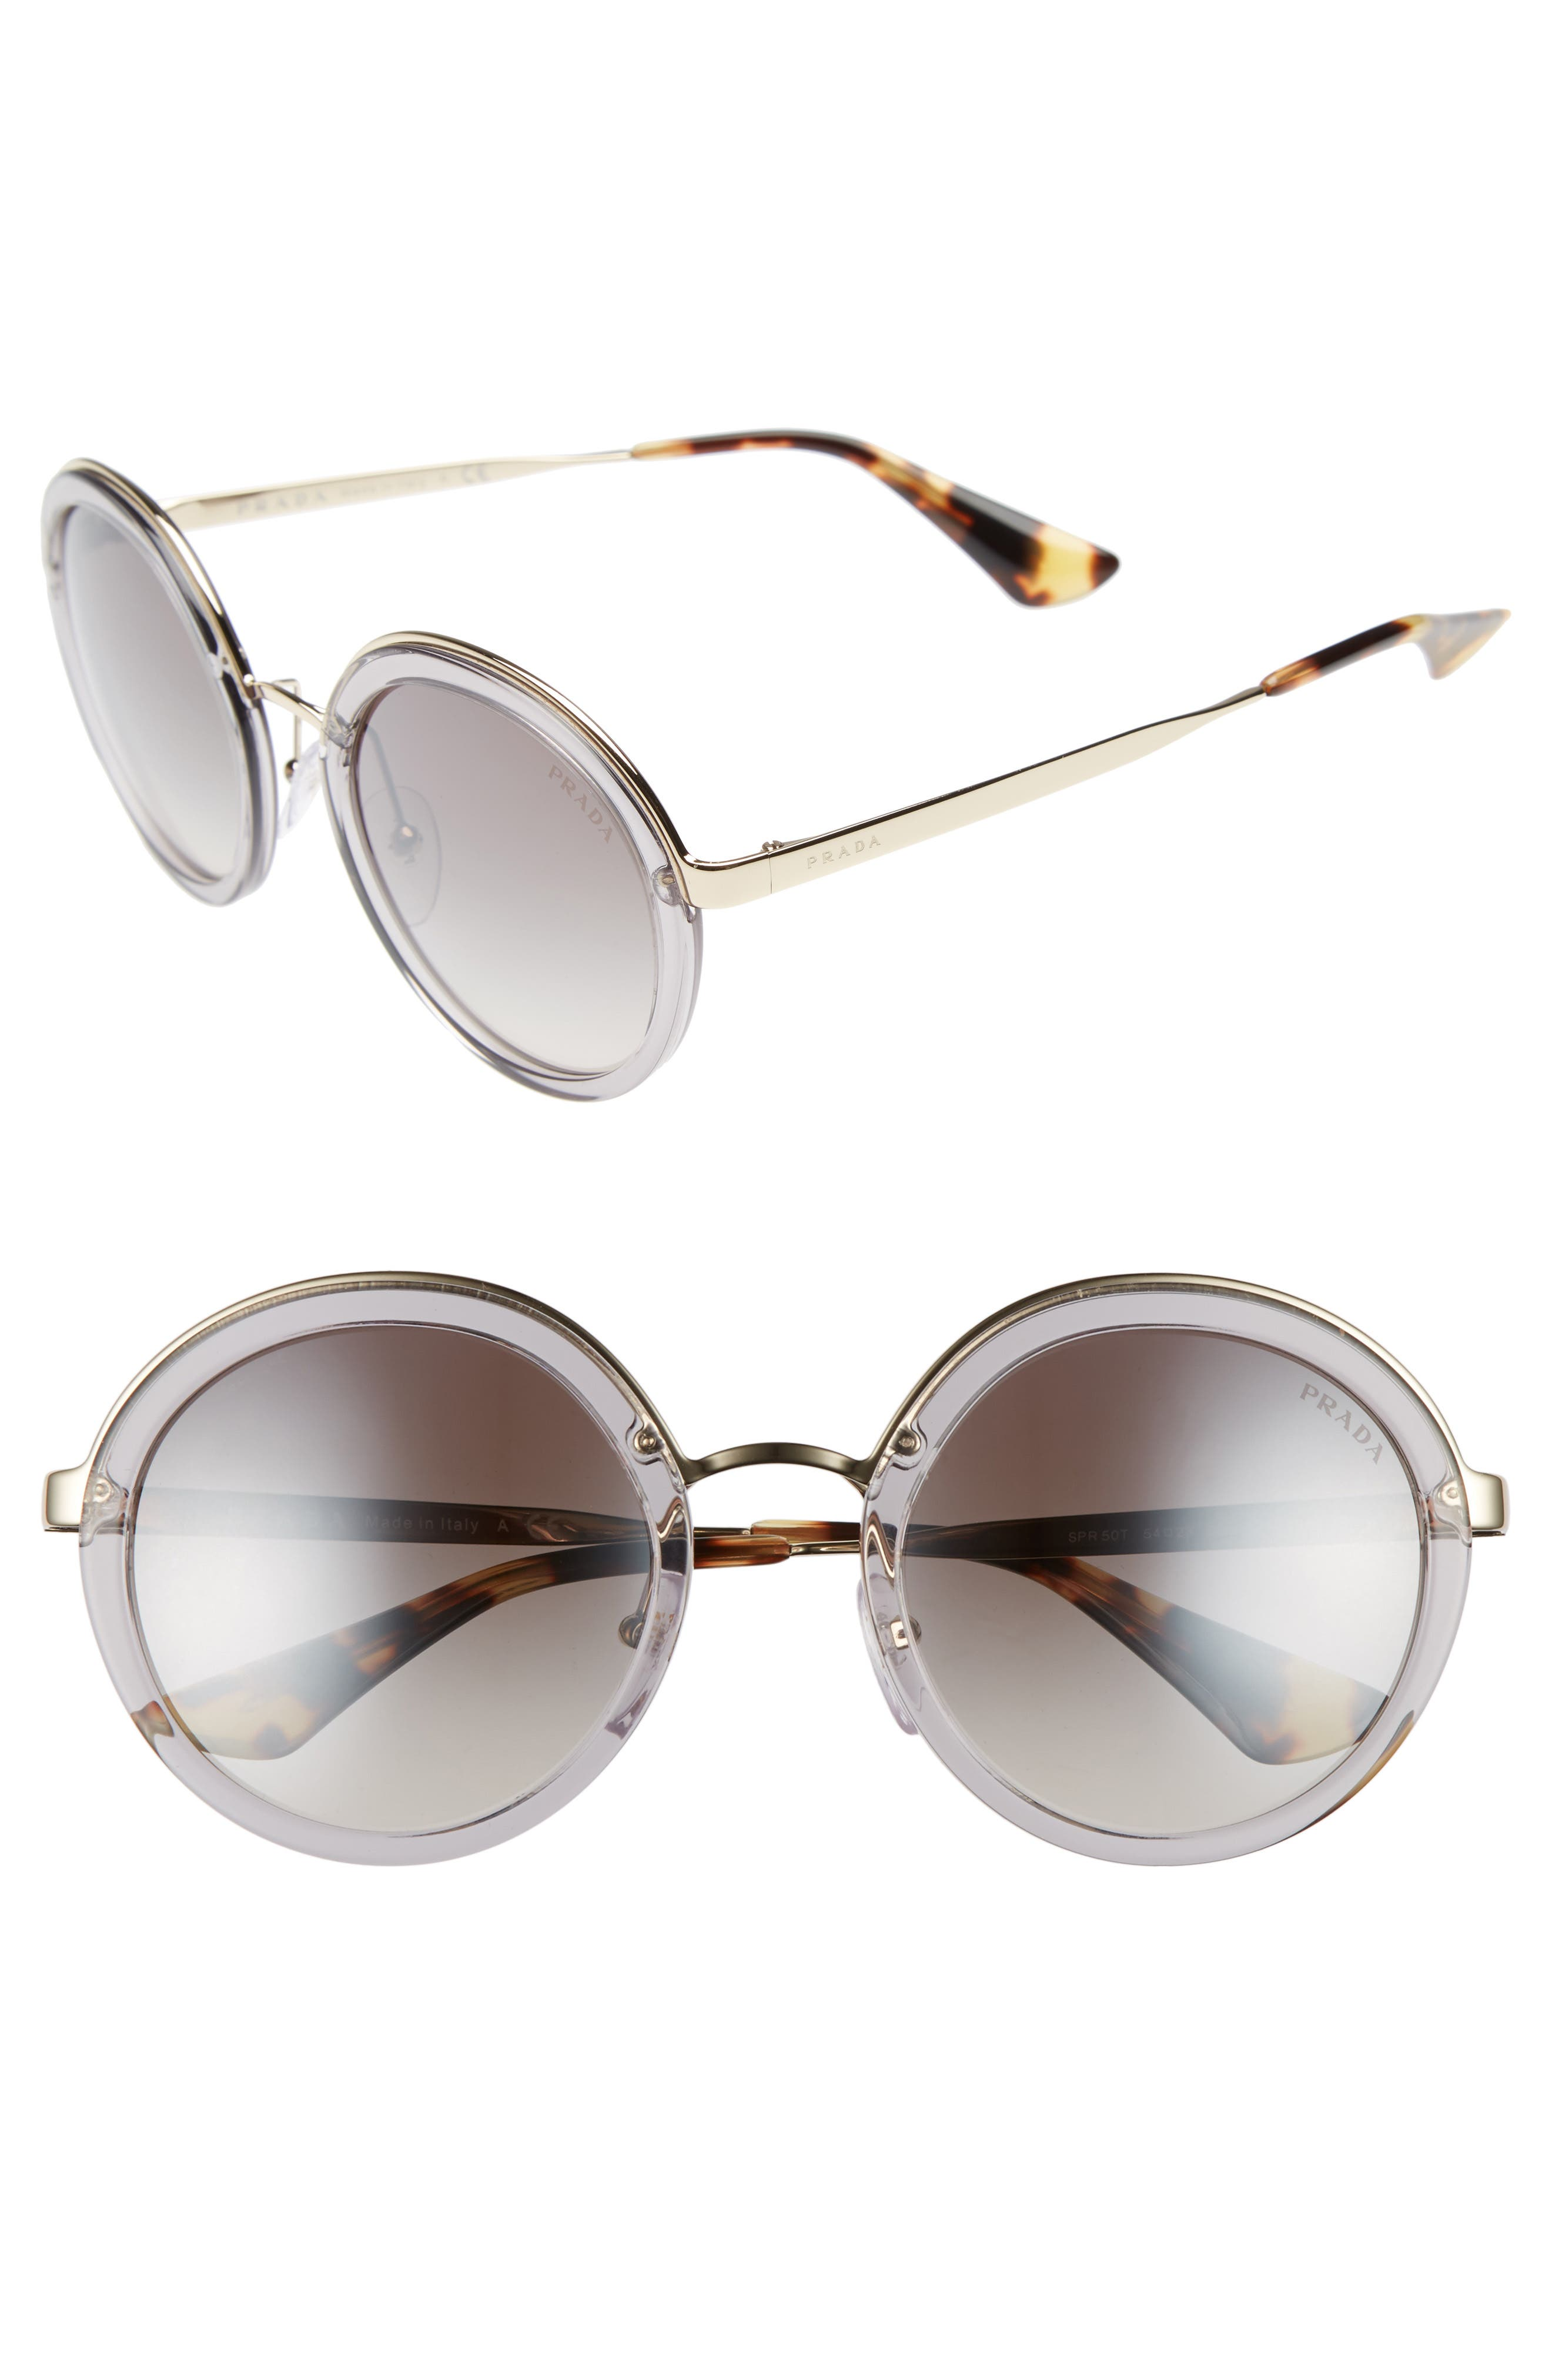 Main Image - Prada 54mm Round Gradient Sunglasses